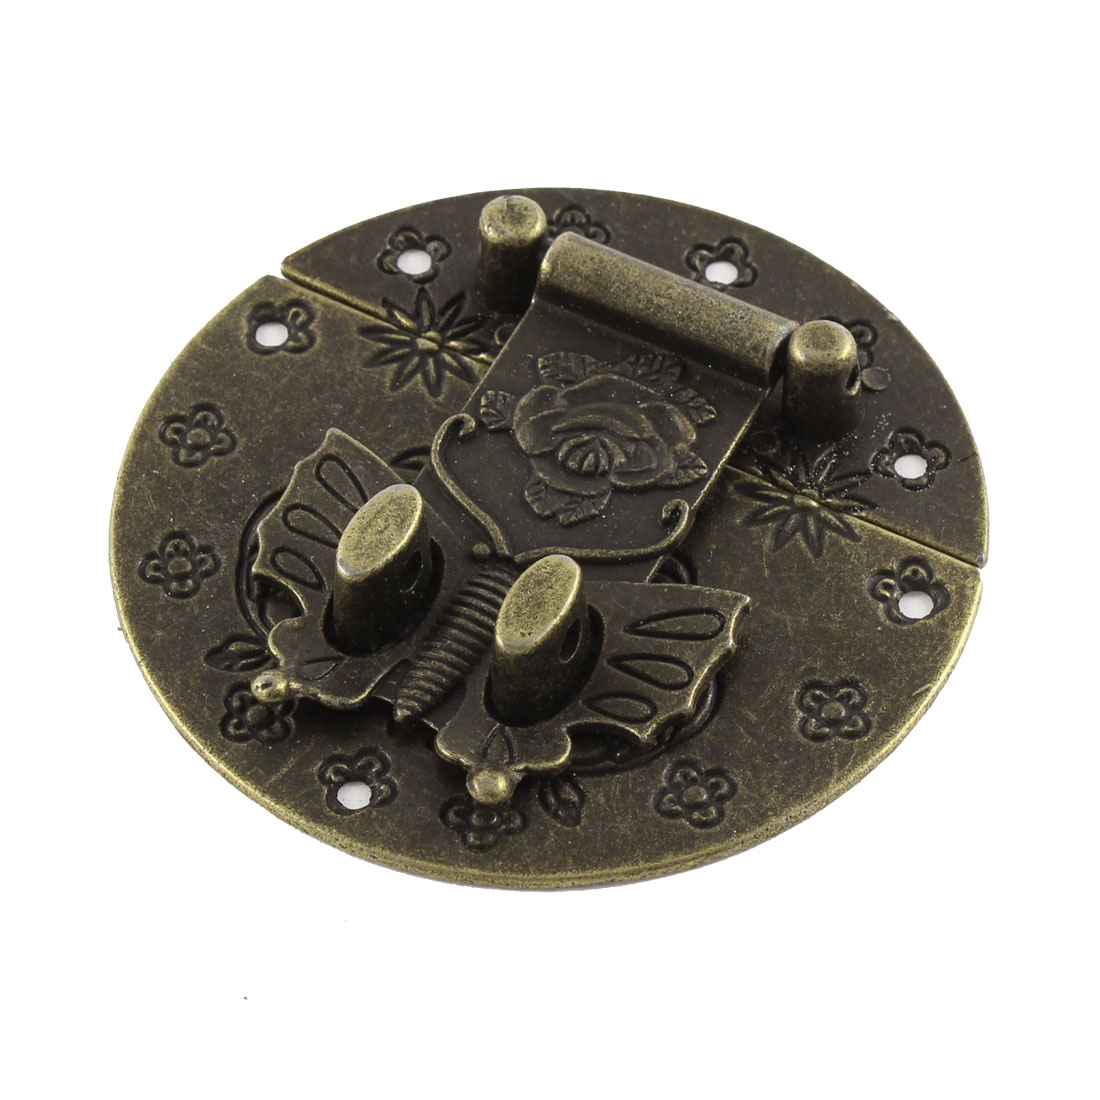 73.5mmx73.5mm Flower Pattern Carved Box Suitcase Decorative Hasp Latch Lock